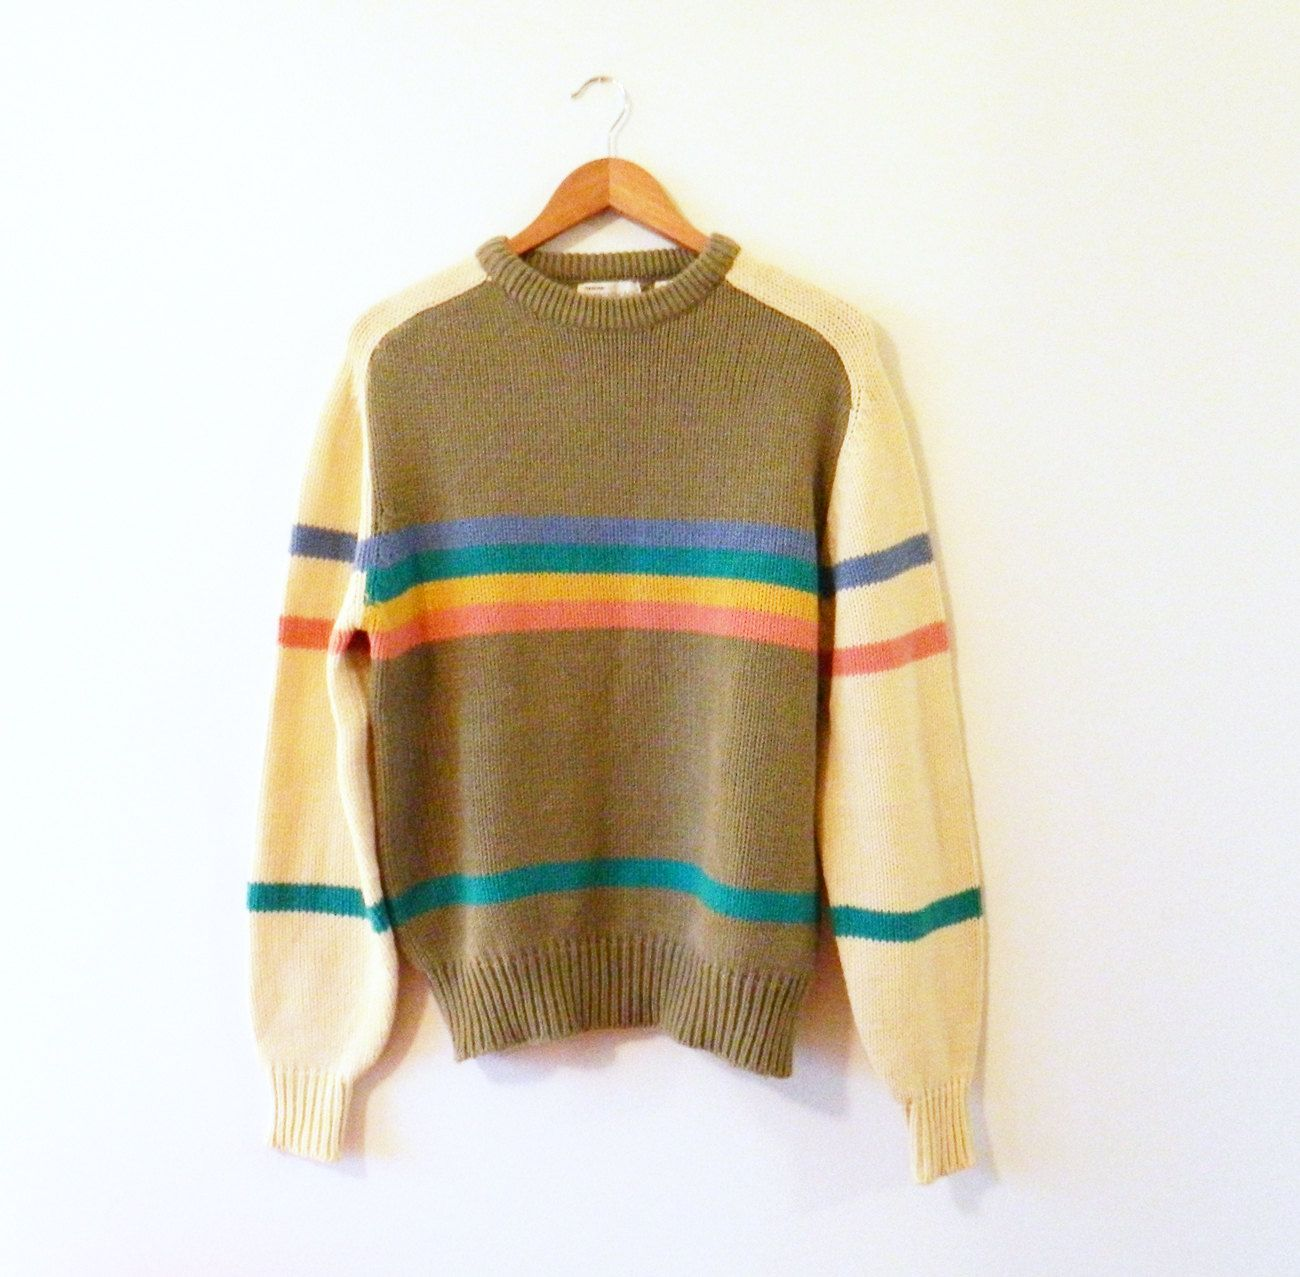 Rainbow Striped Vintage Sweater / Vintage Oversized Sweater / Unisex Colorful Rad 80s Jumper by thehappyforest on Etsy